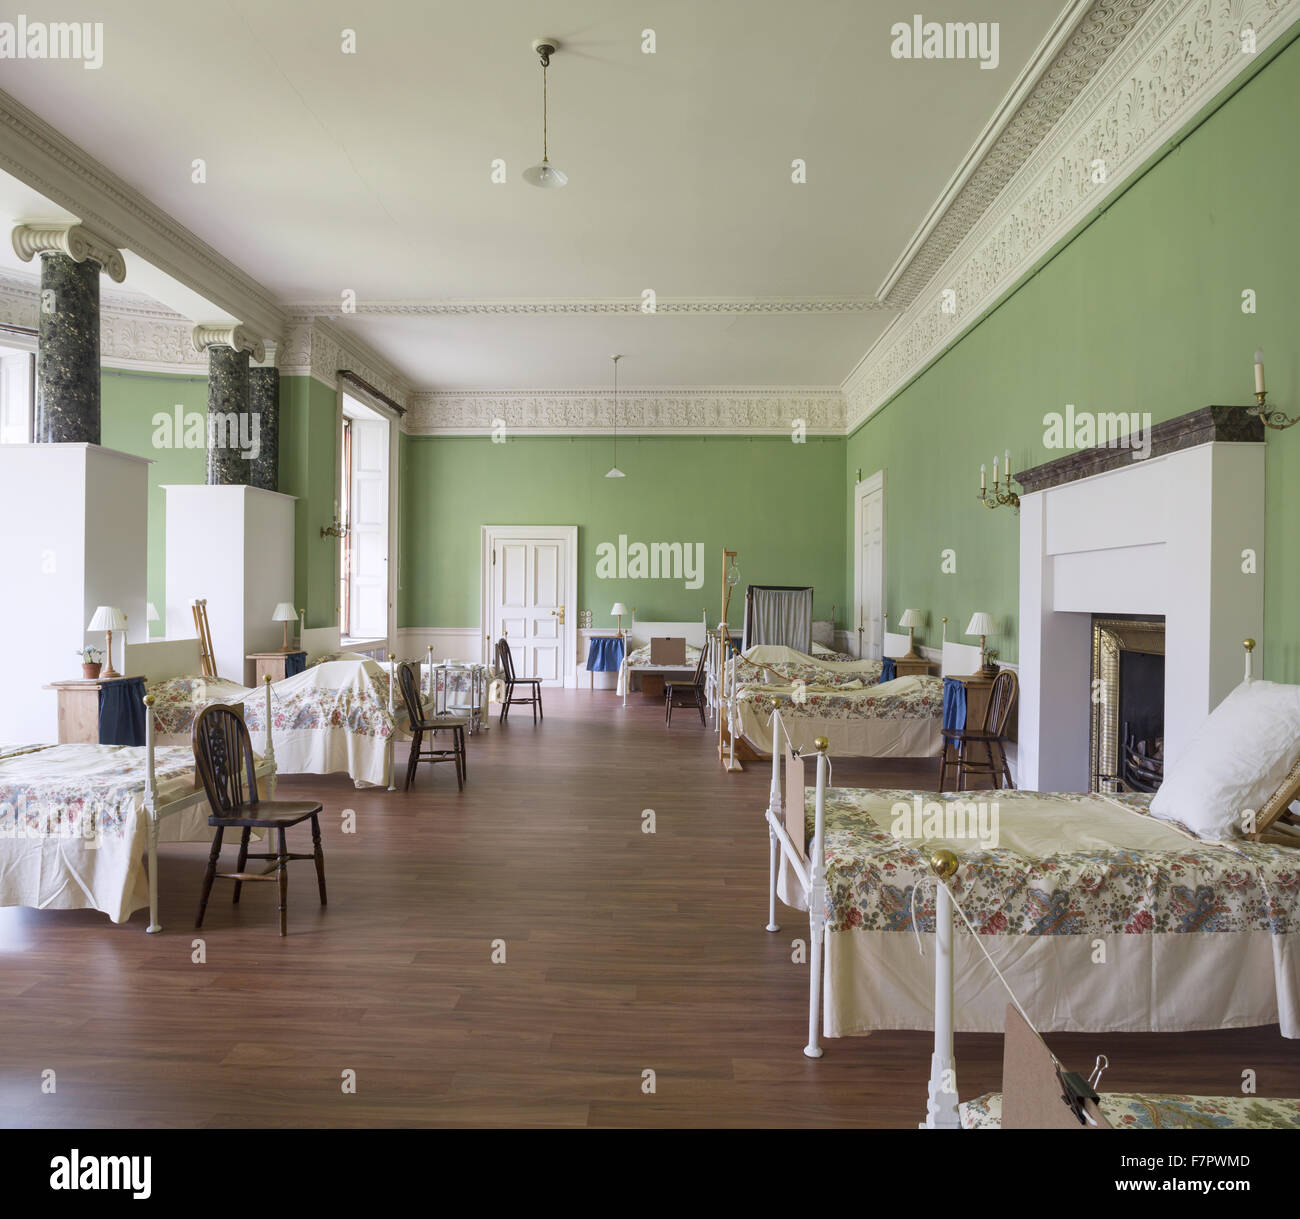 Recreation of a ward at the Stamford Military Hospital, in The Saloon at Dunham Massey, Cheshire. During the First - Stock Image